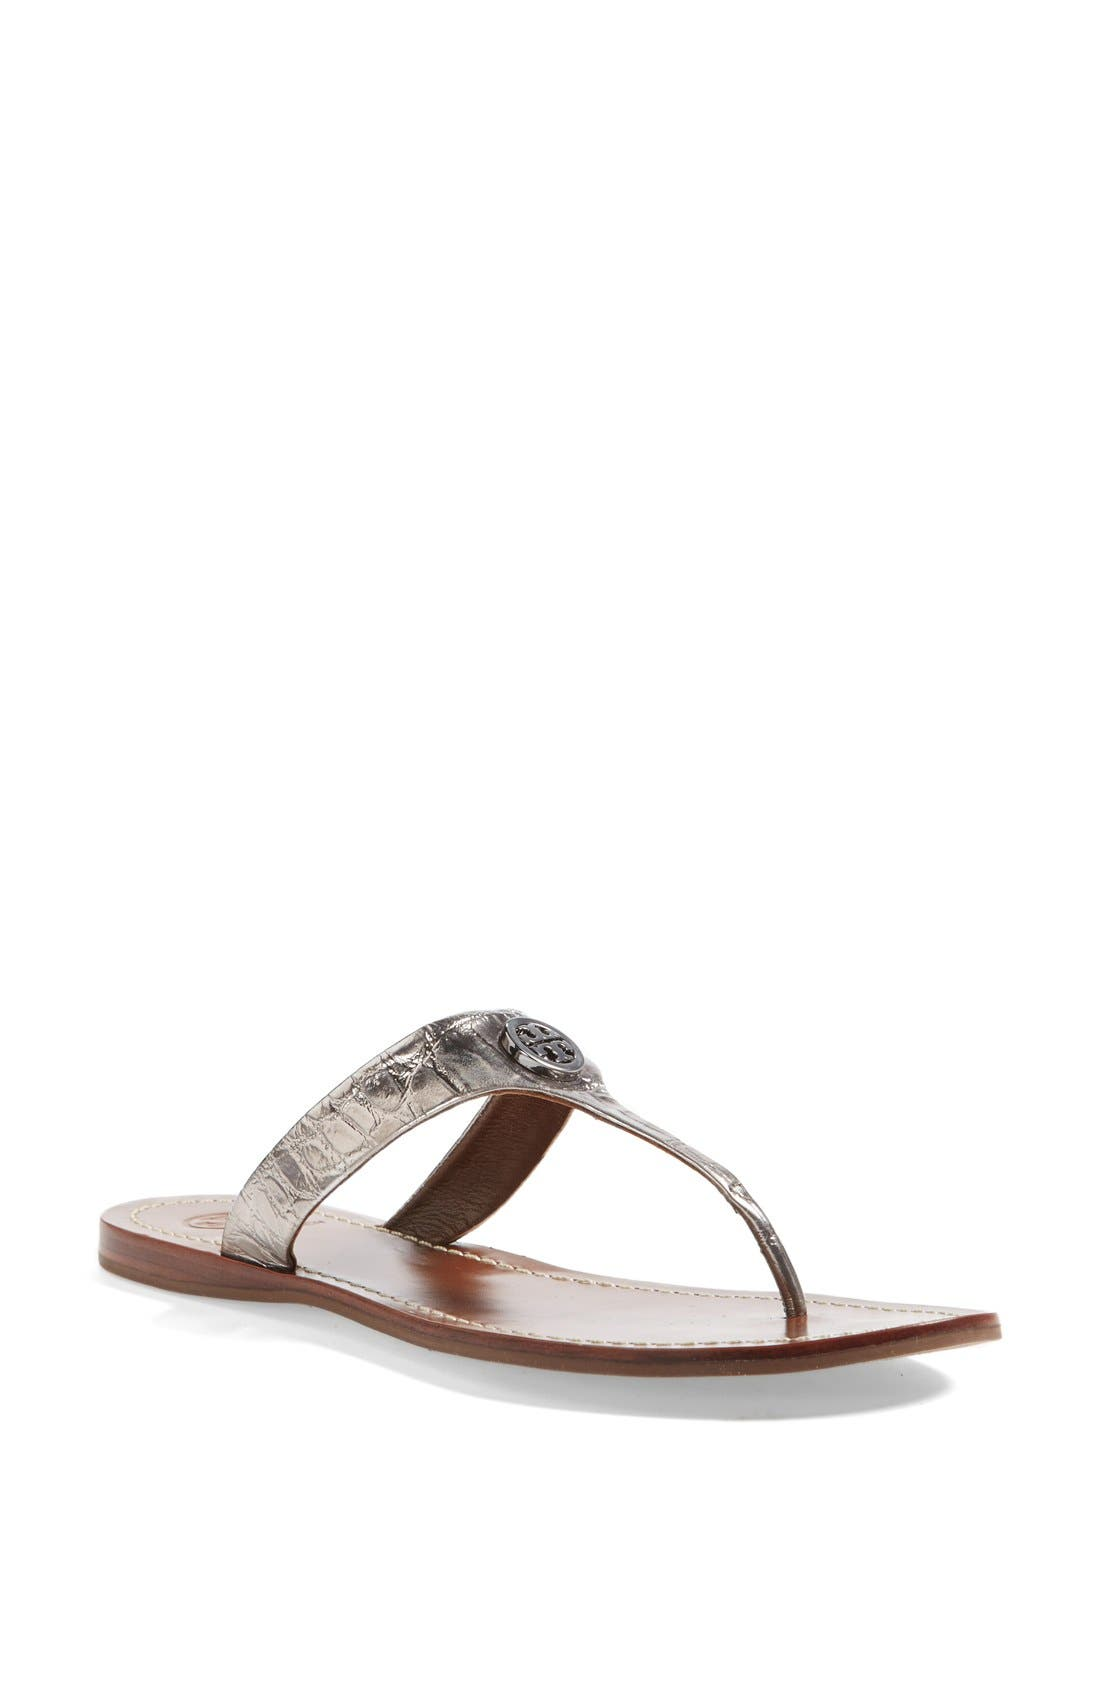 Alternate Image 1 Selected - Tory Burch 'Cameron' Sandal